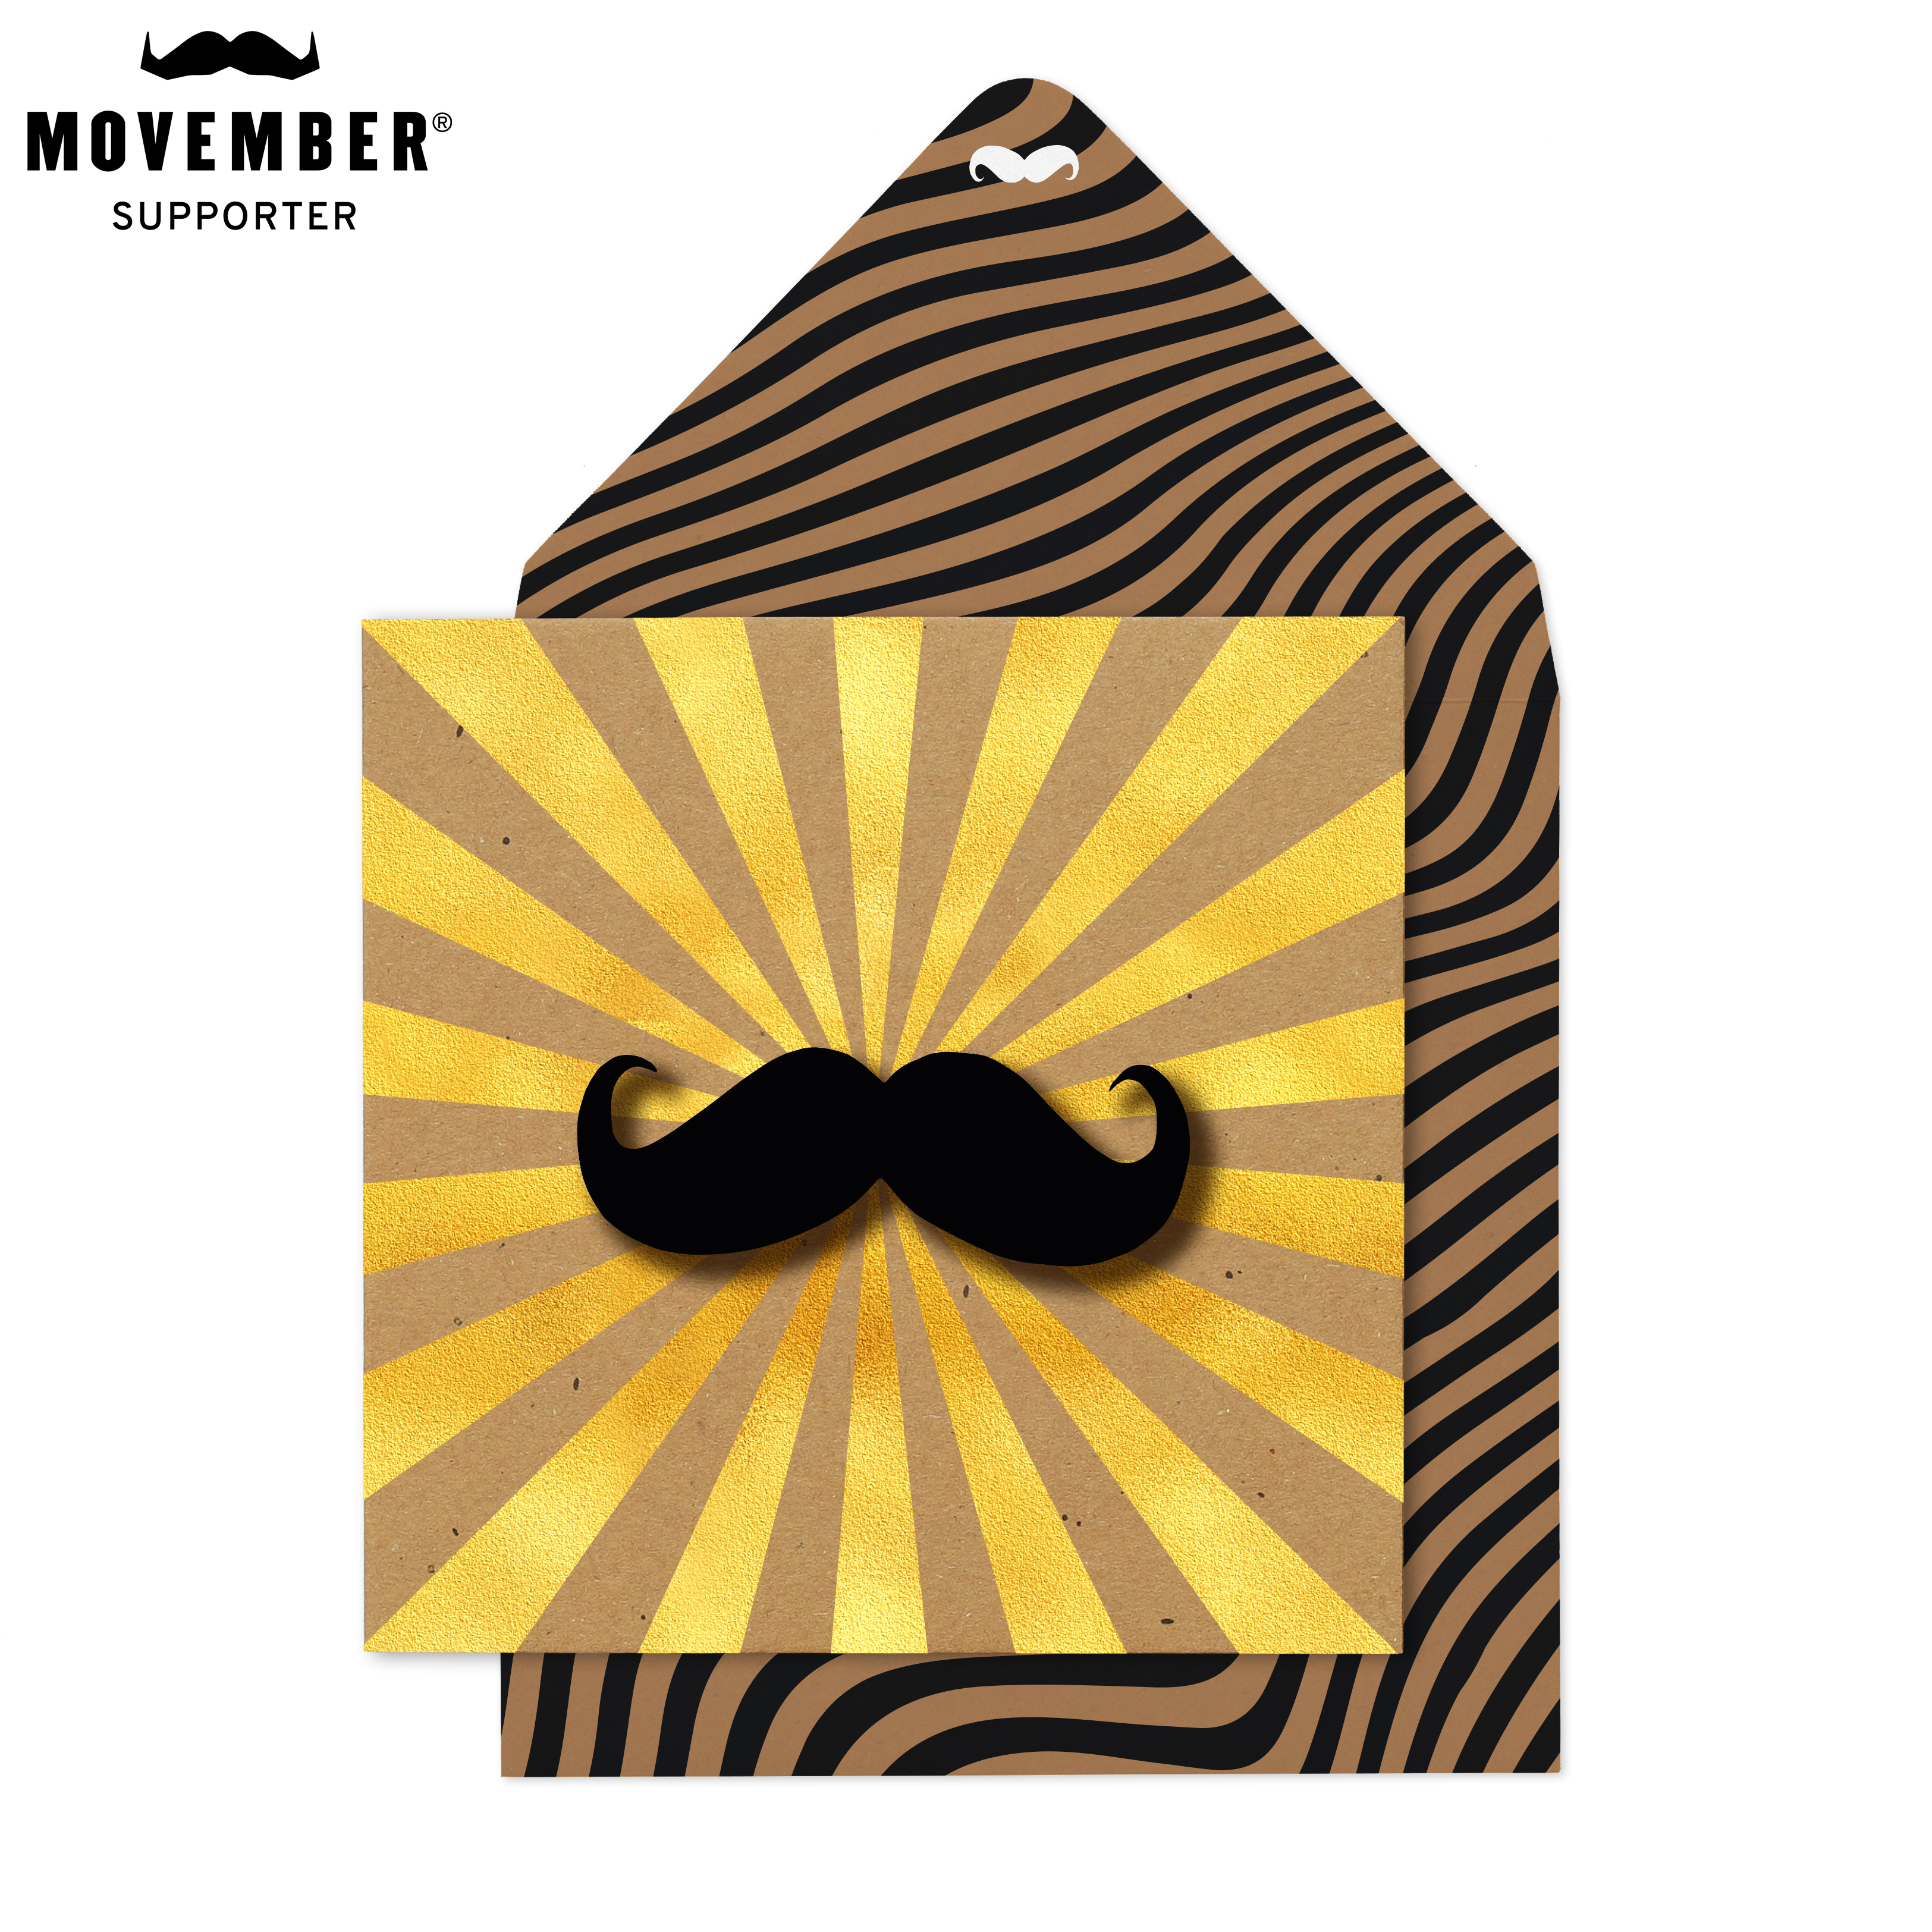 Above: Moustache's do feature in some of the Modern Mister designs, but not all.